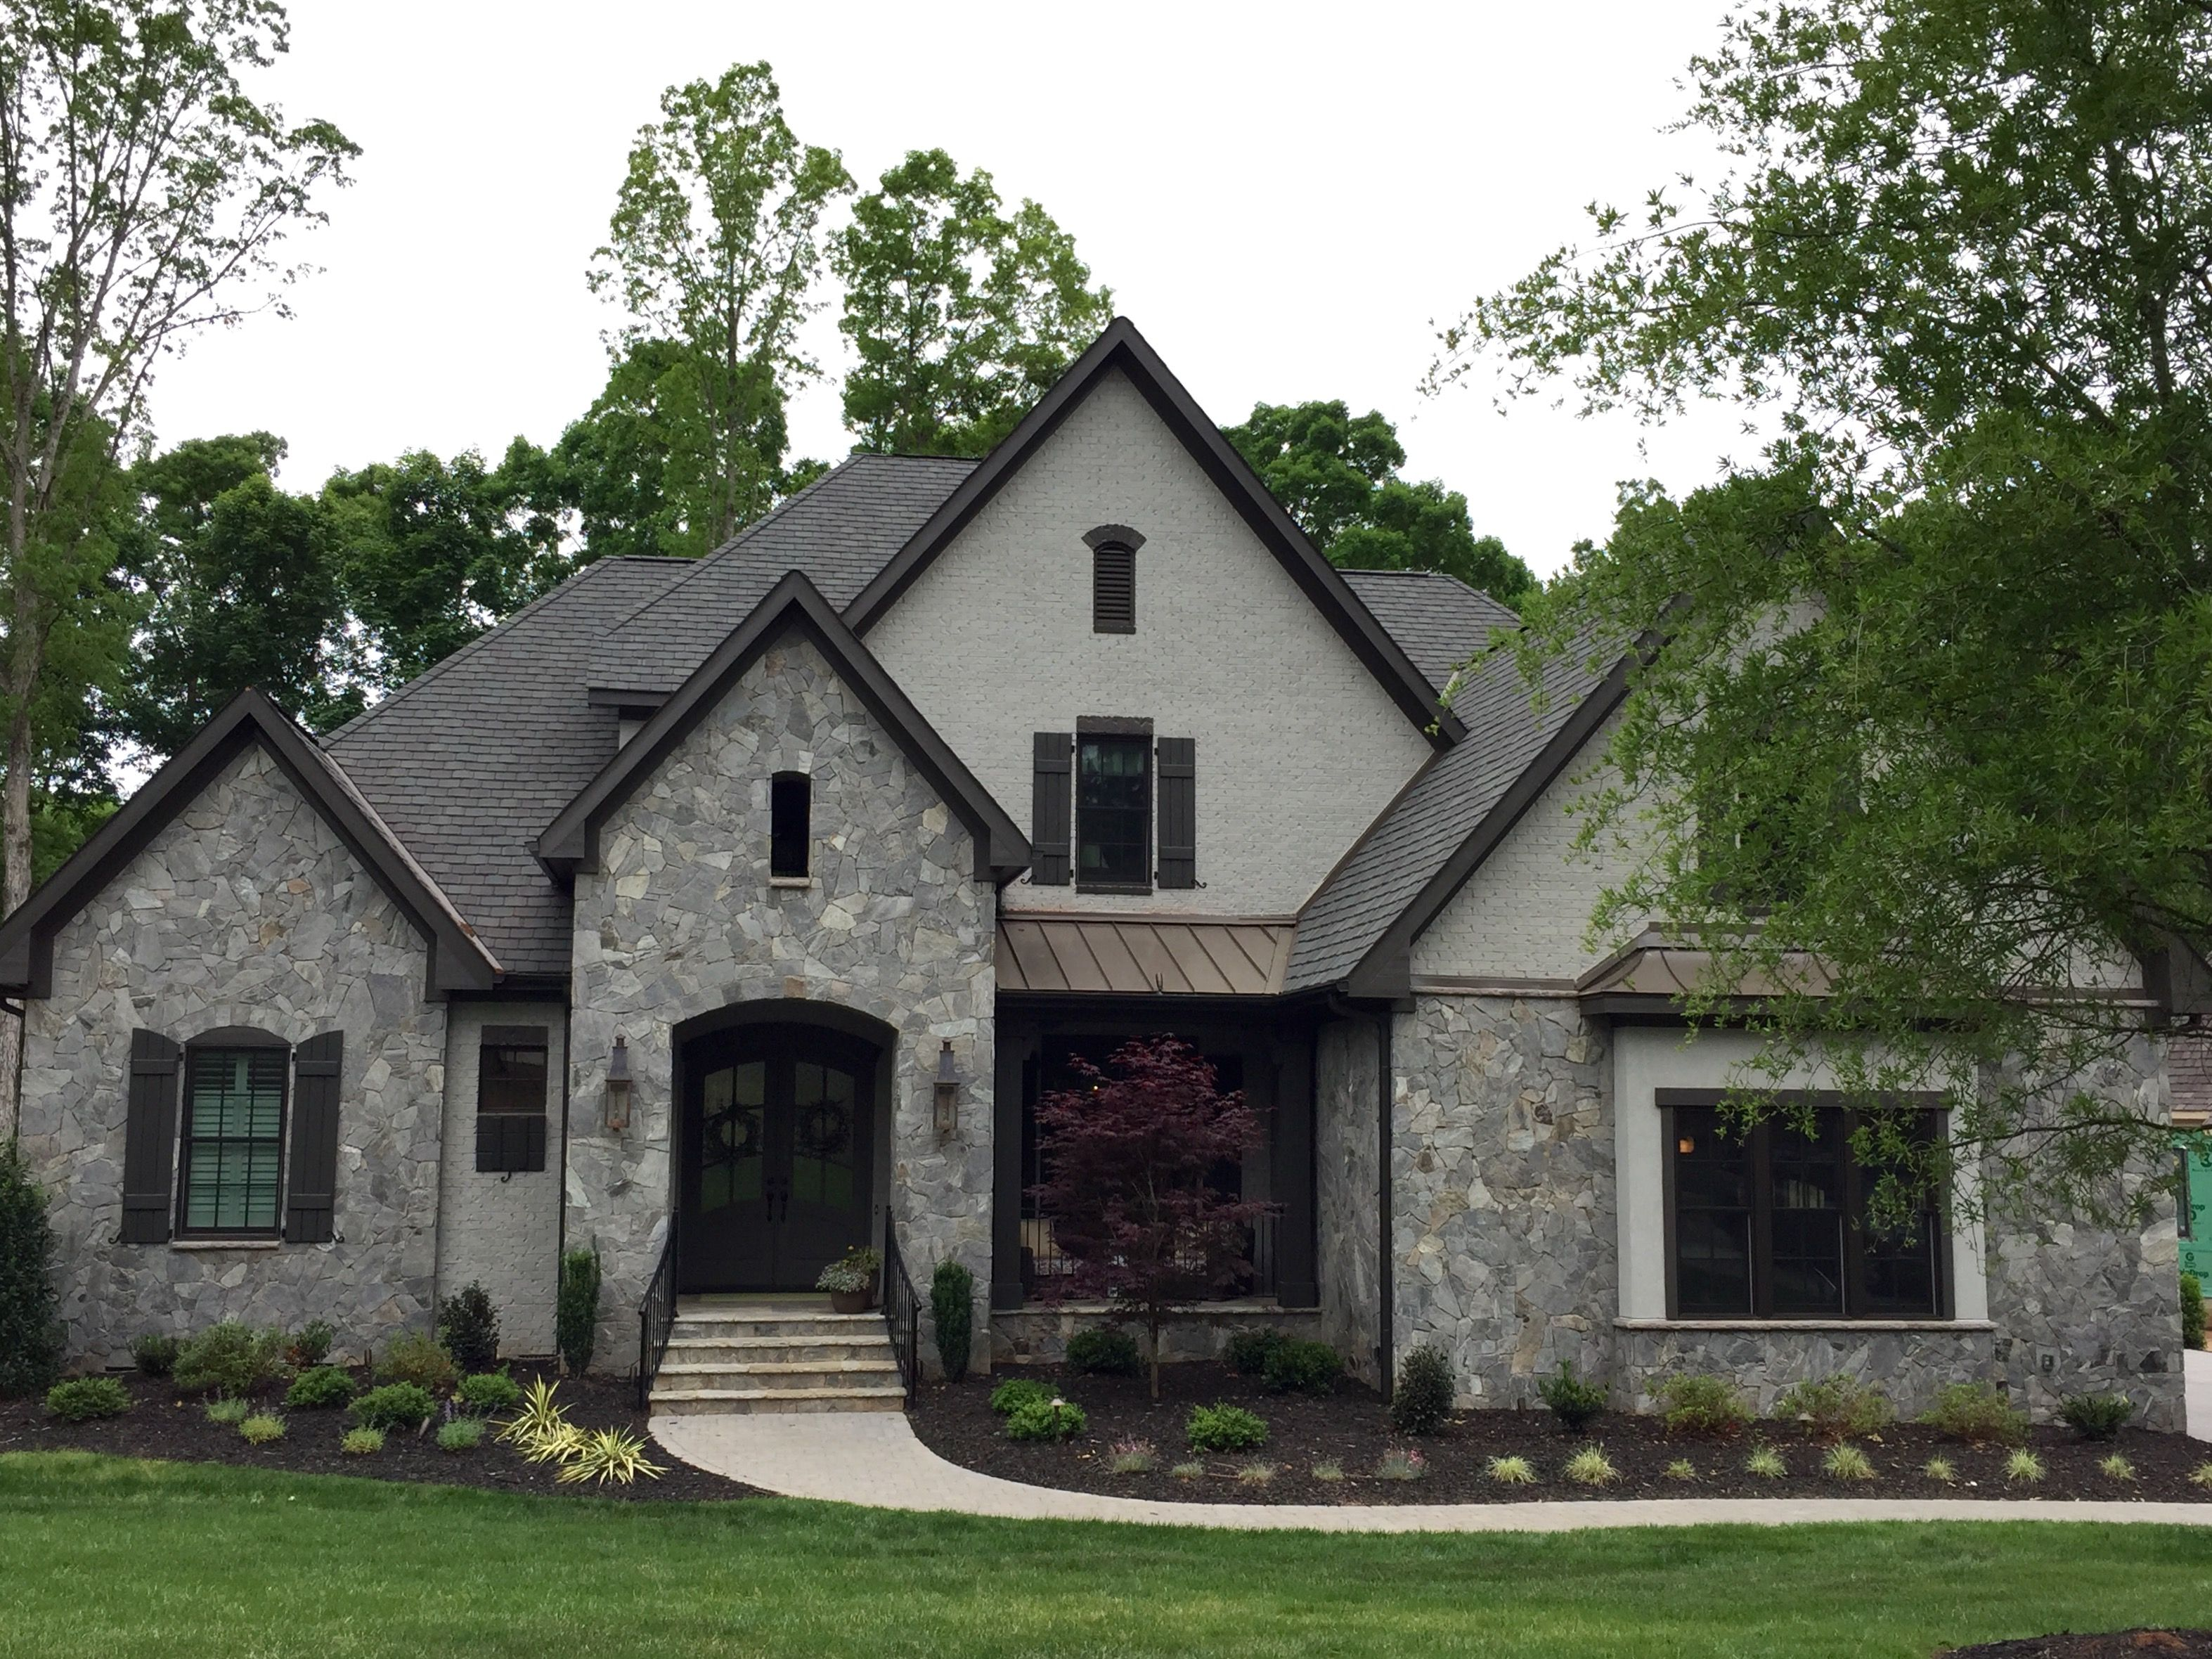 Arh plan asheville 1131f exterior 42 stone dove gray - Exterior brick and siding combinations ...